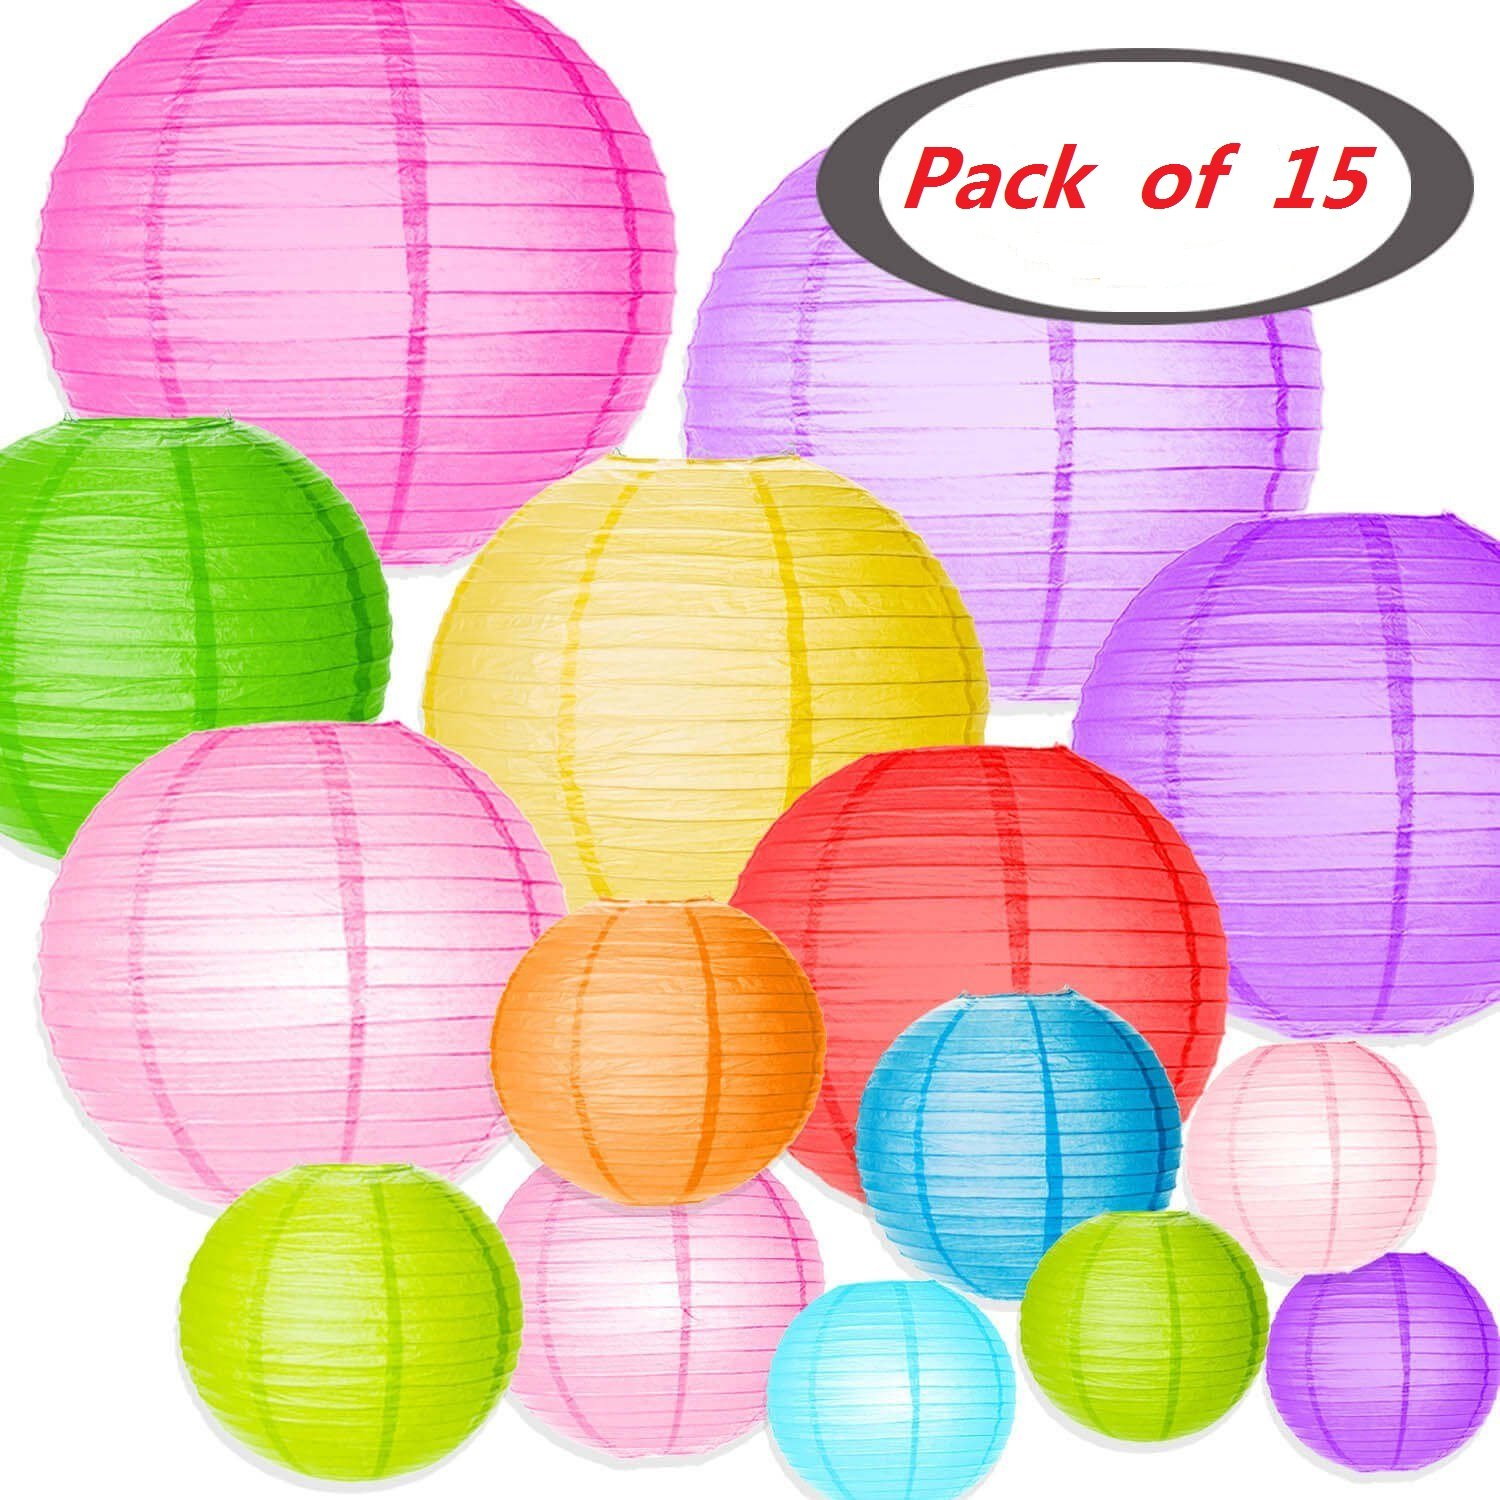 Colorful Paper Lanterns,JRing 15Pack Chinese/Japanese Paper Hanging Decorations Ball Lanterns Lamps for Home Decor, Parties, and Weddings (Assorted Colors and Sizes)